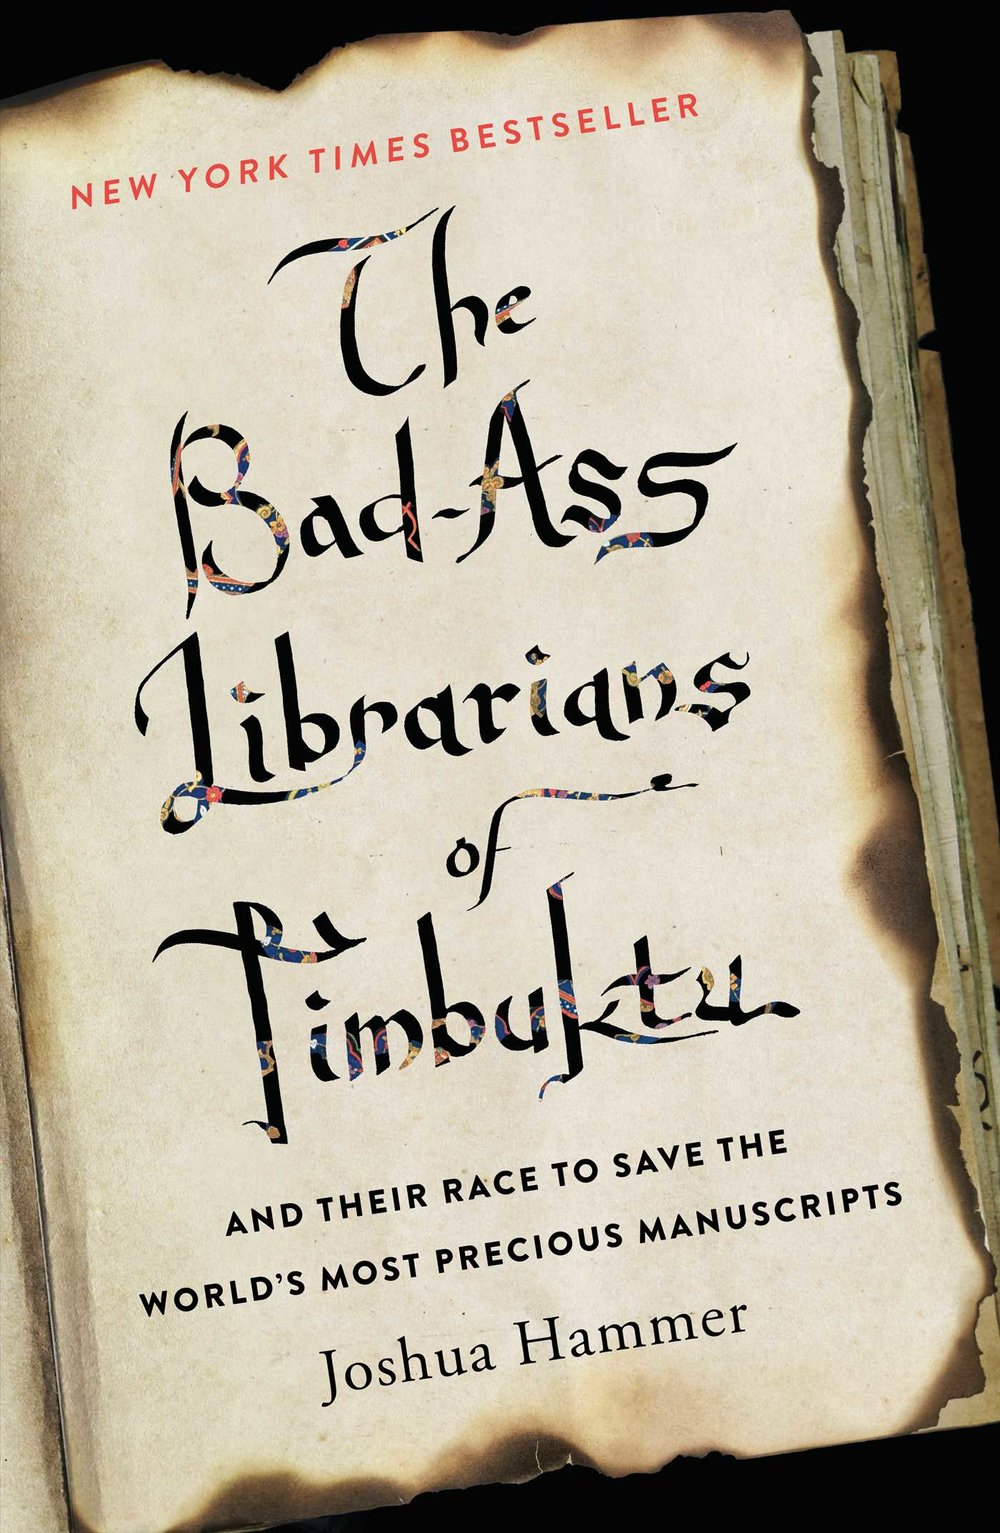 the-bad-ass-librarians-of-timbuktu-9781476777405_hr.jpg